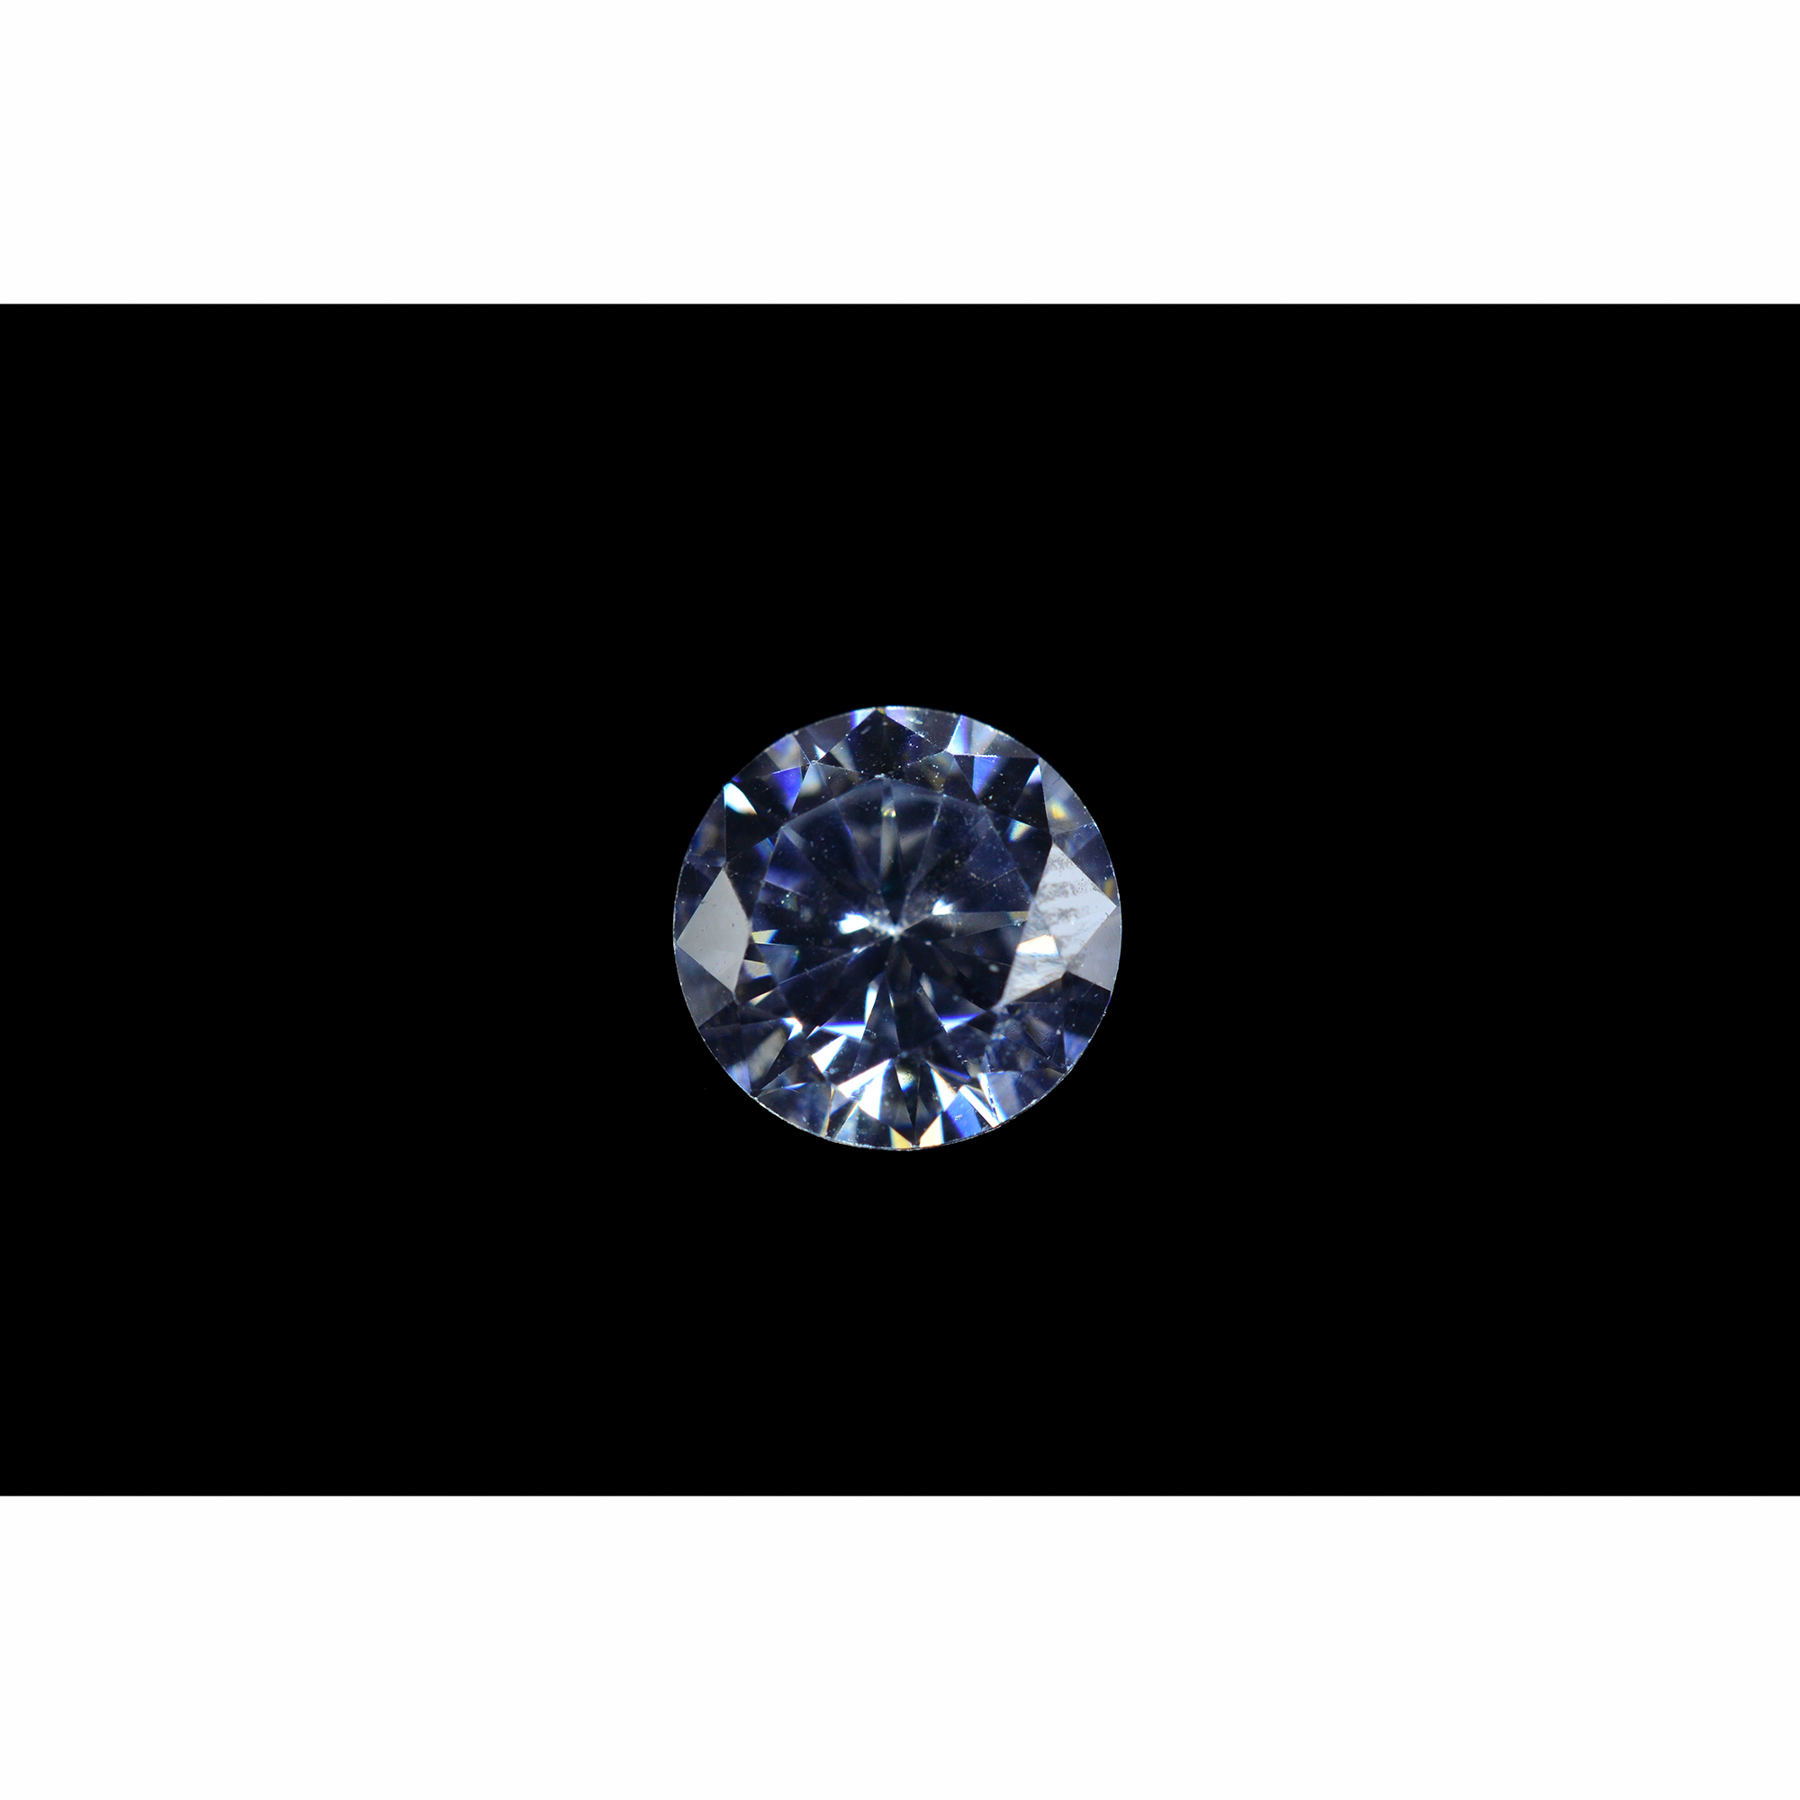 78a6a8fbc 4mm Round Faceted Cubic Zirconia - Santa Fe Jewelers Supply : Santa ...